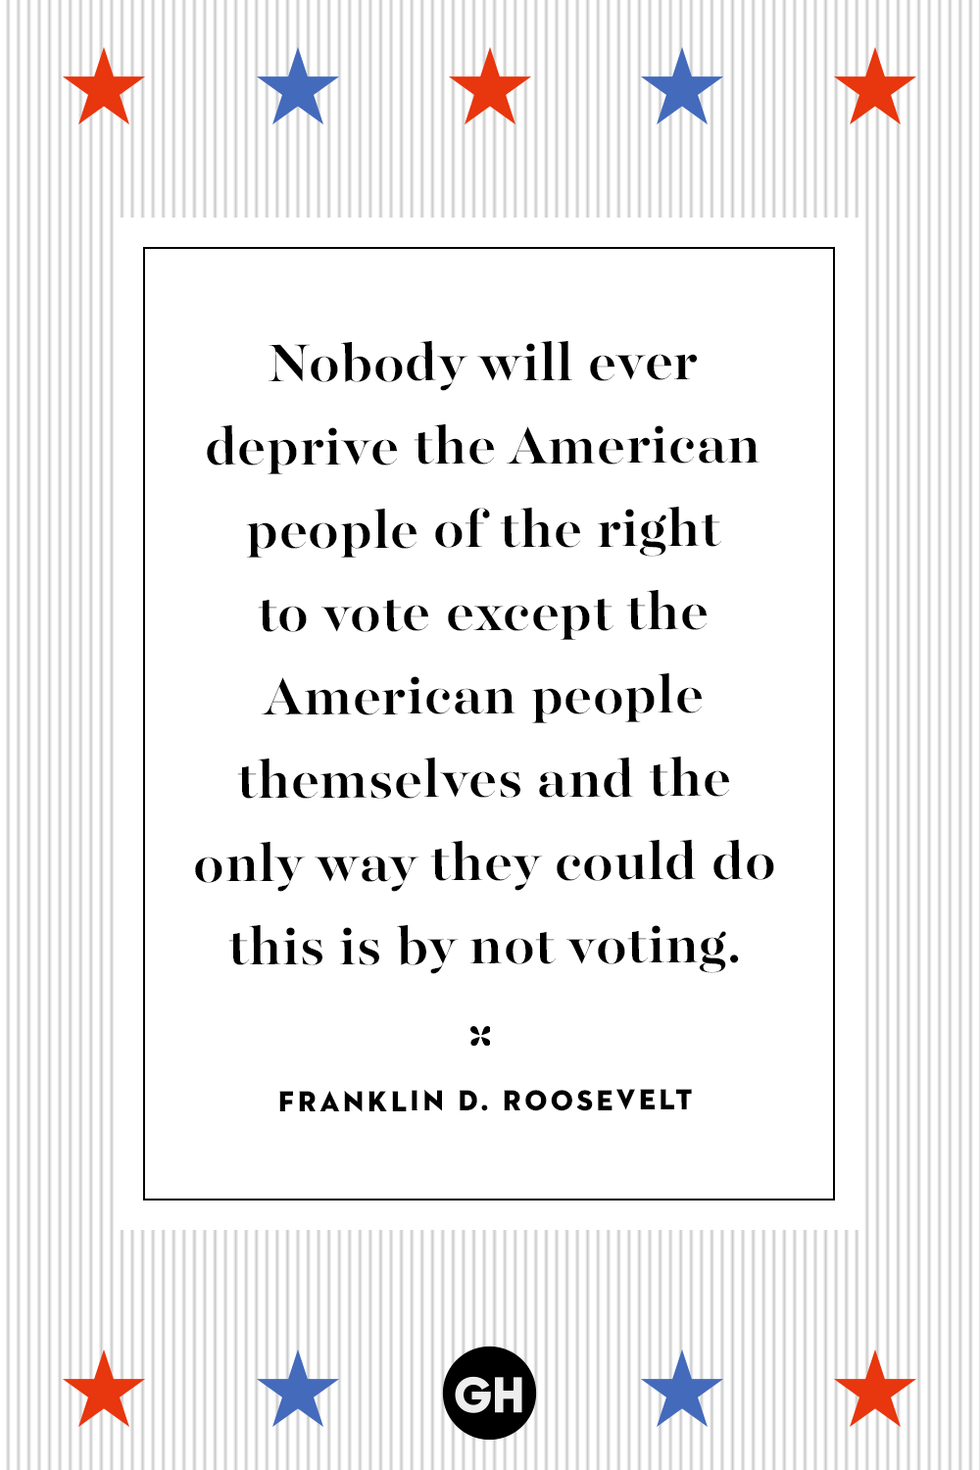 election-quotes-voting-quotes-06-franklin-d-roosevelt-1567019363